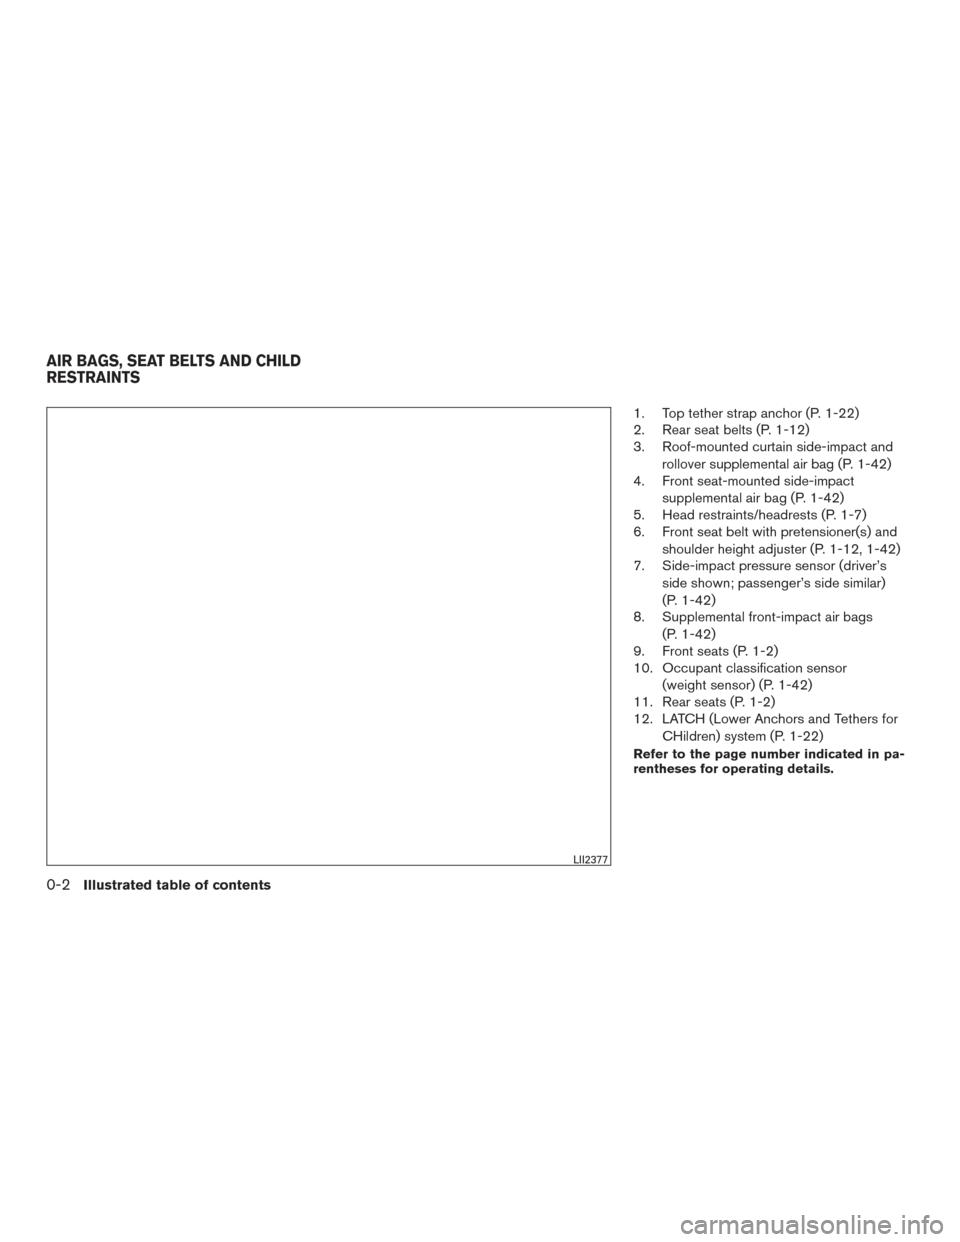 NISSAN ALTIMA 2016 L33 / 5.G Owners Manual, Page 9